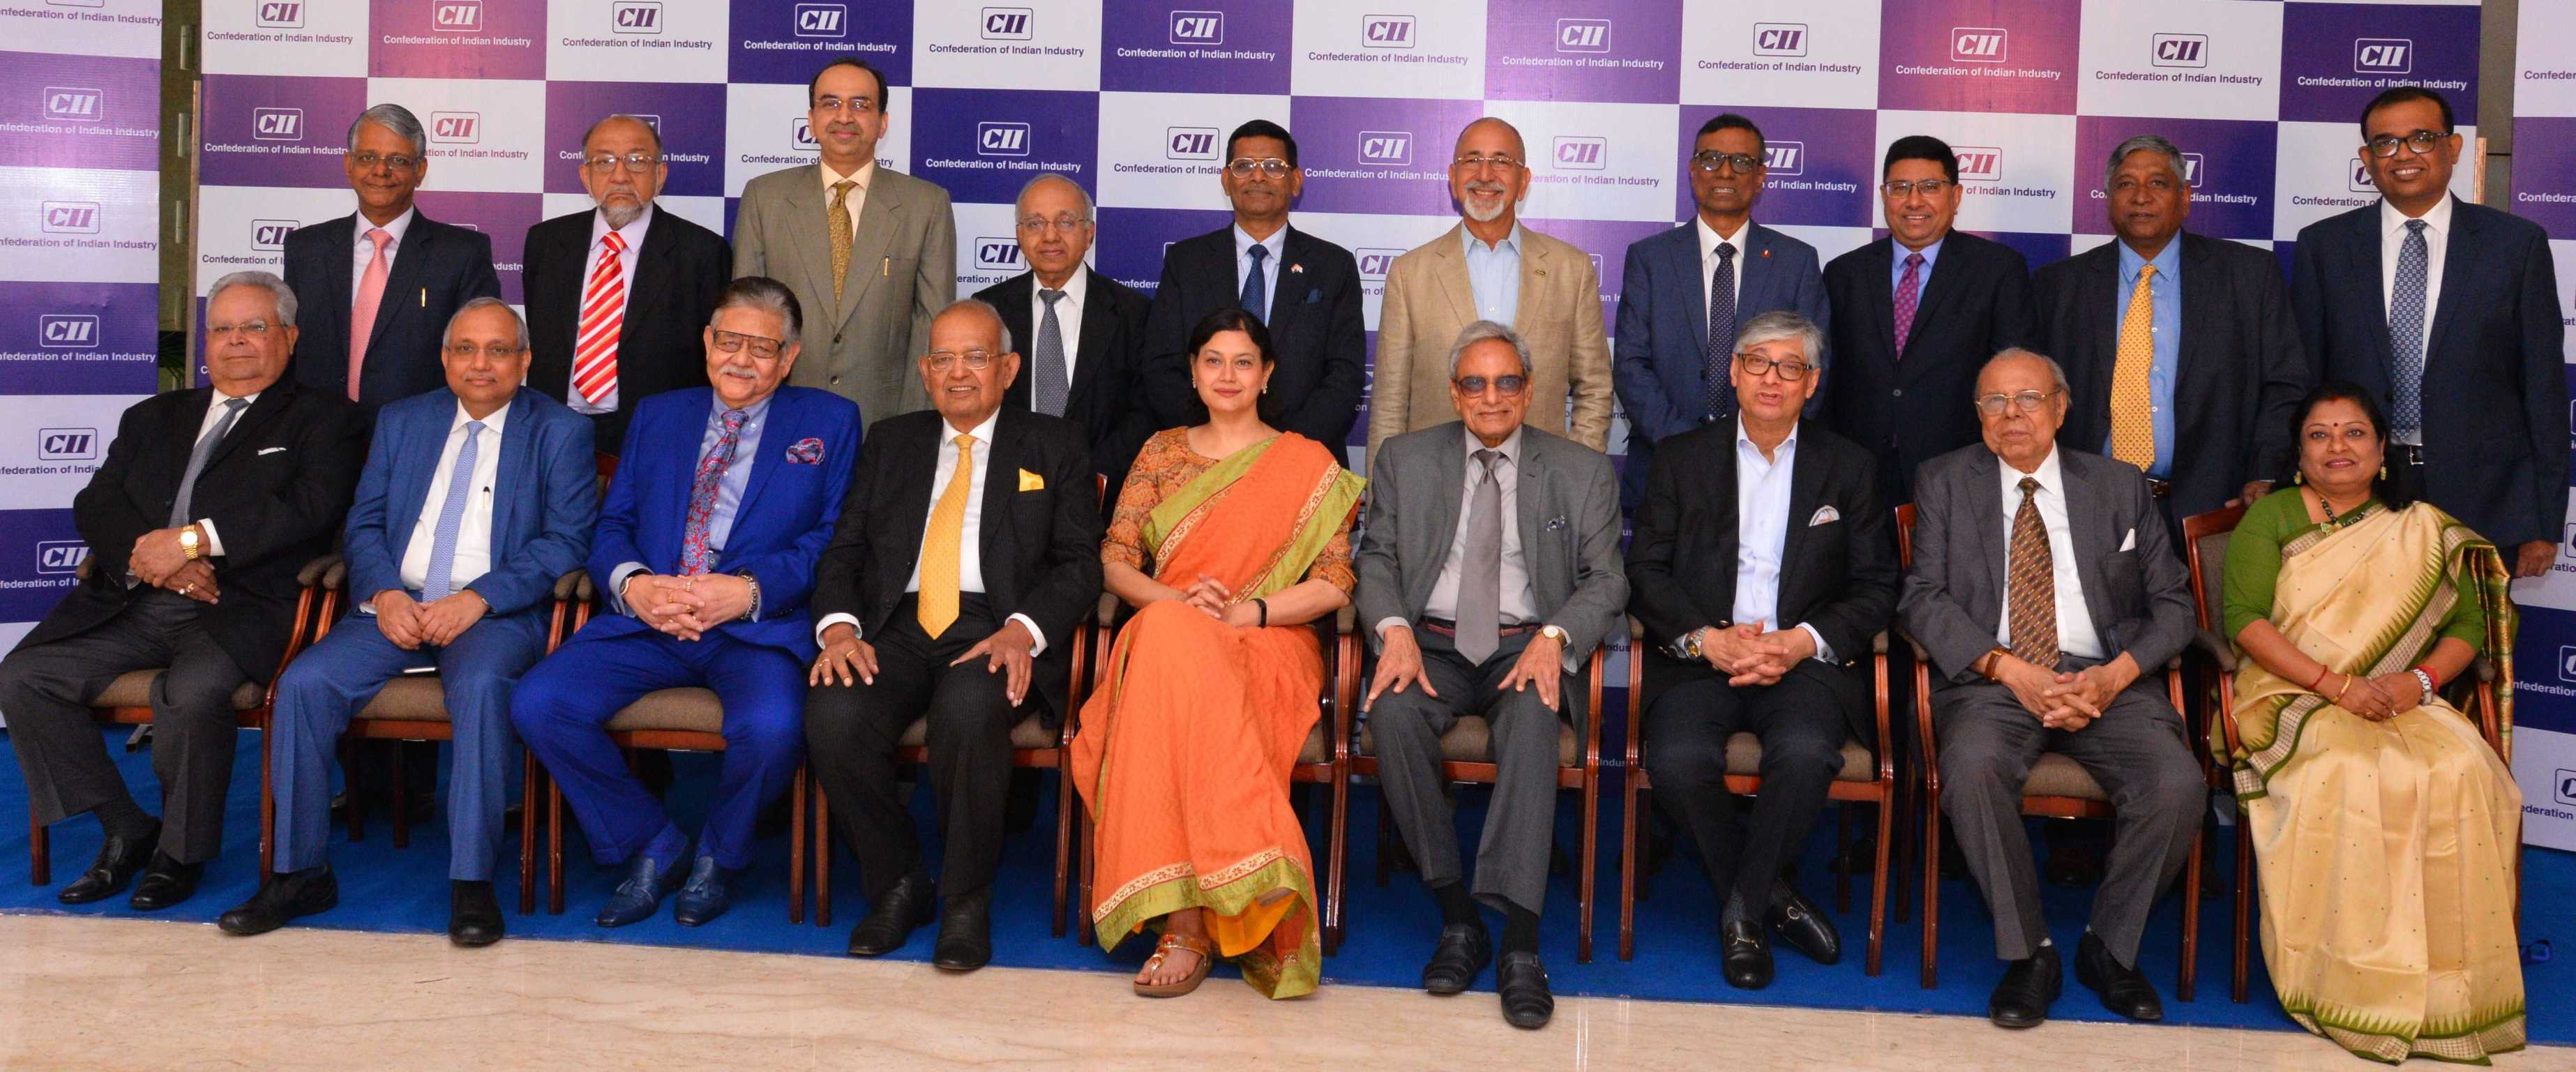 Industry stalwarts at the CII Annual General Meeting in Kolkata